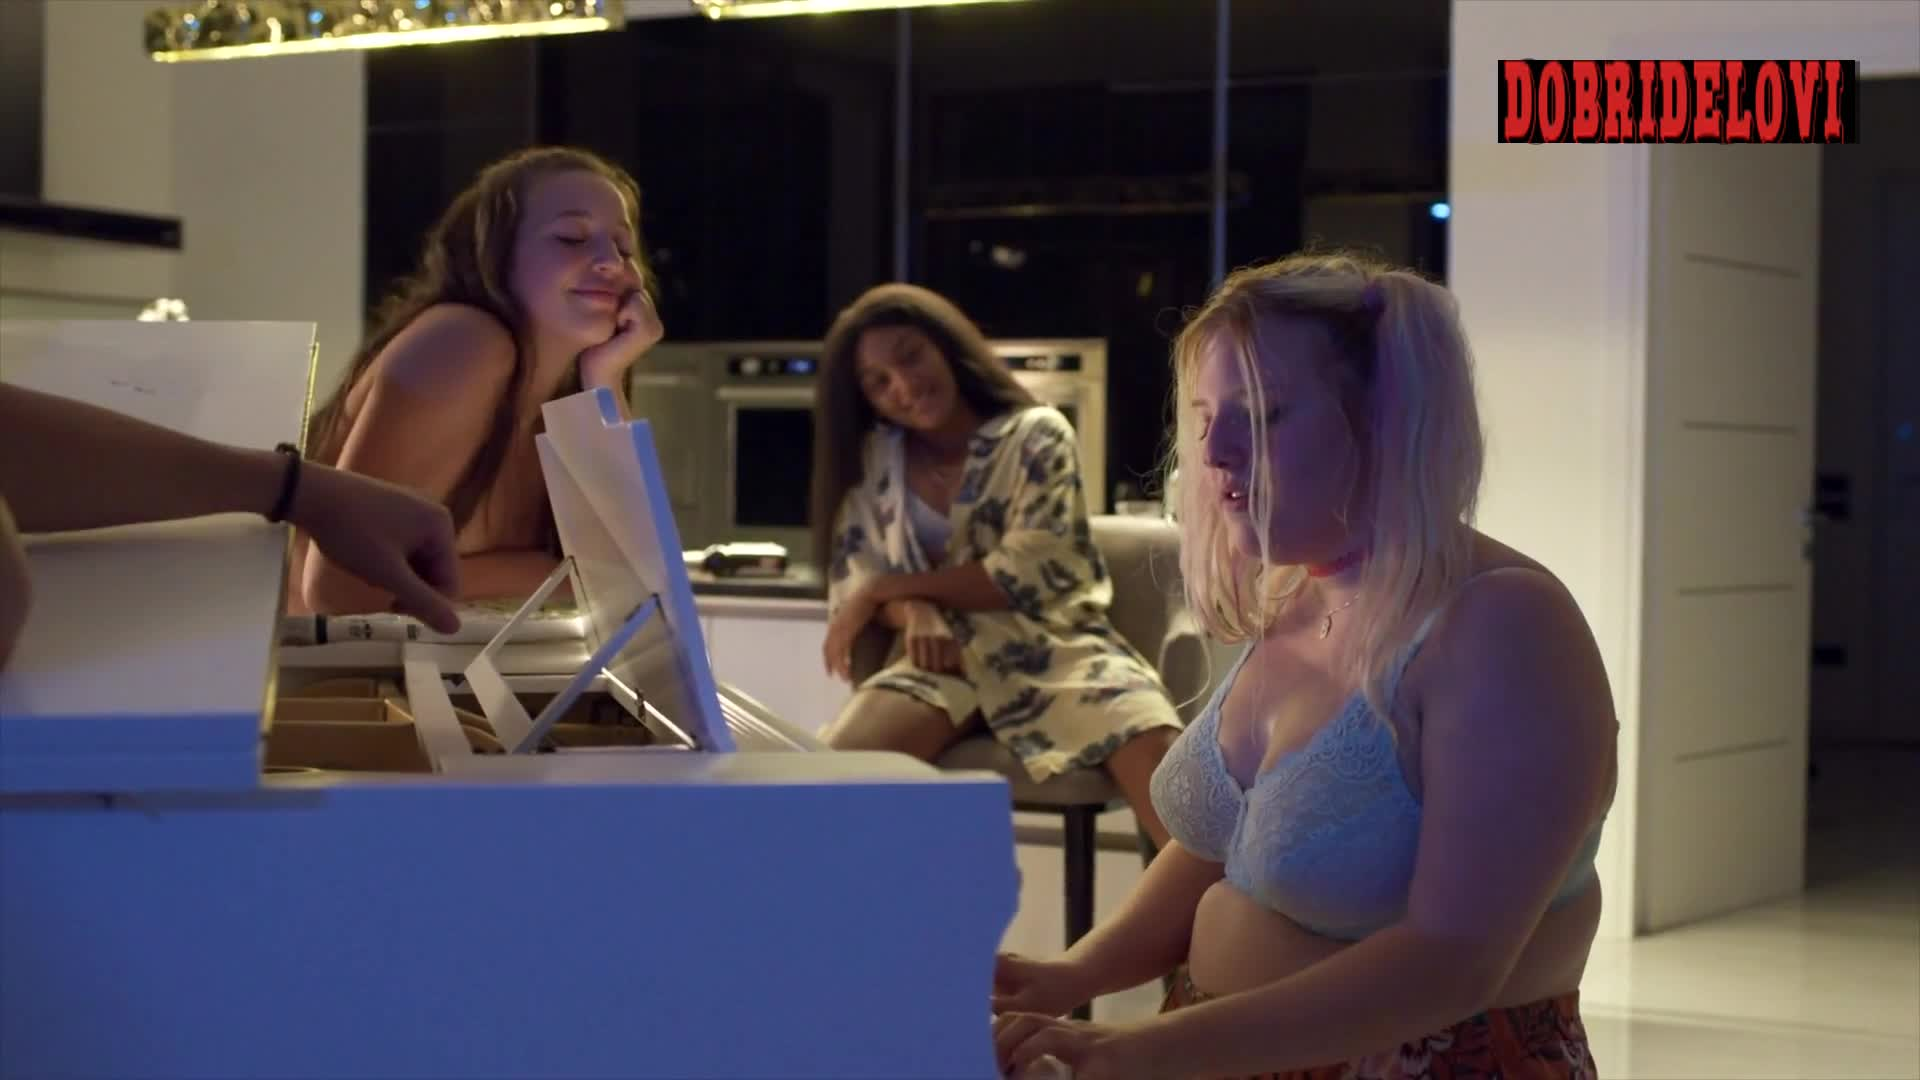 Francesca Scorsese plays the piano with topless Vittoria Bottin leaning in scene from We Are Who We Are